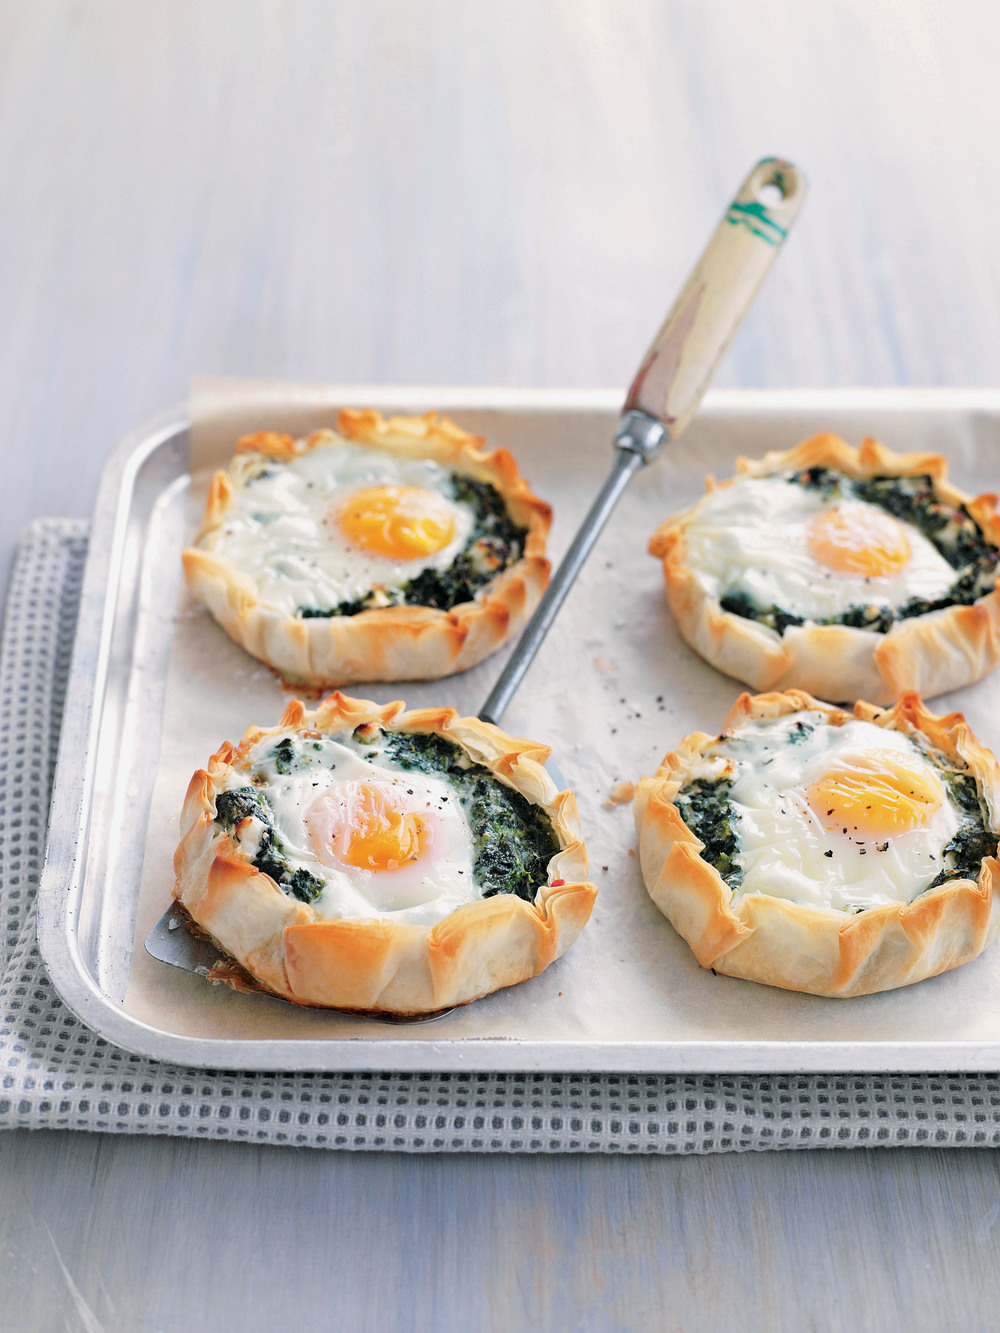 Freeform Spinach, Feta & Egg Tarts